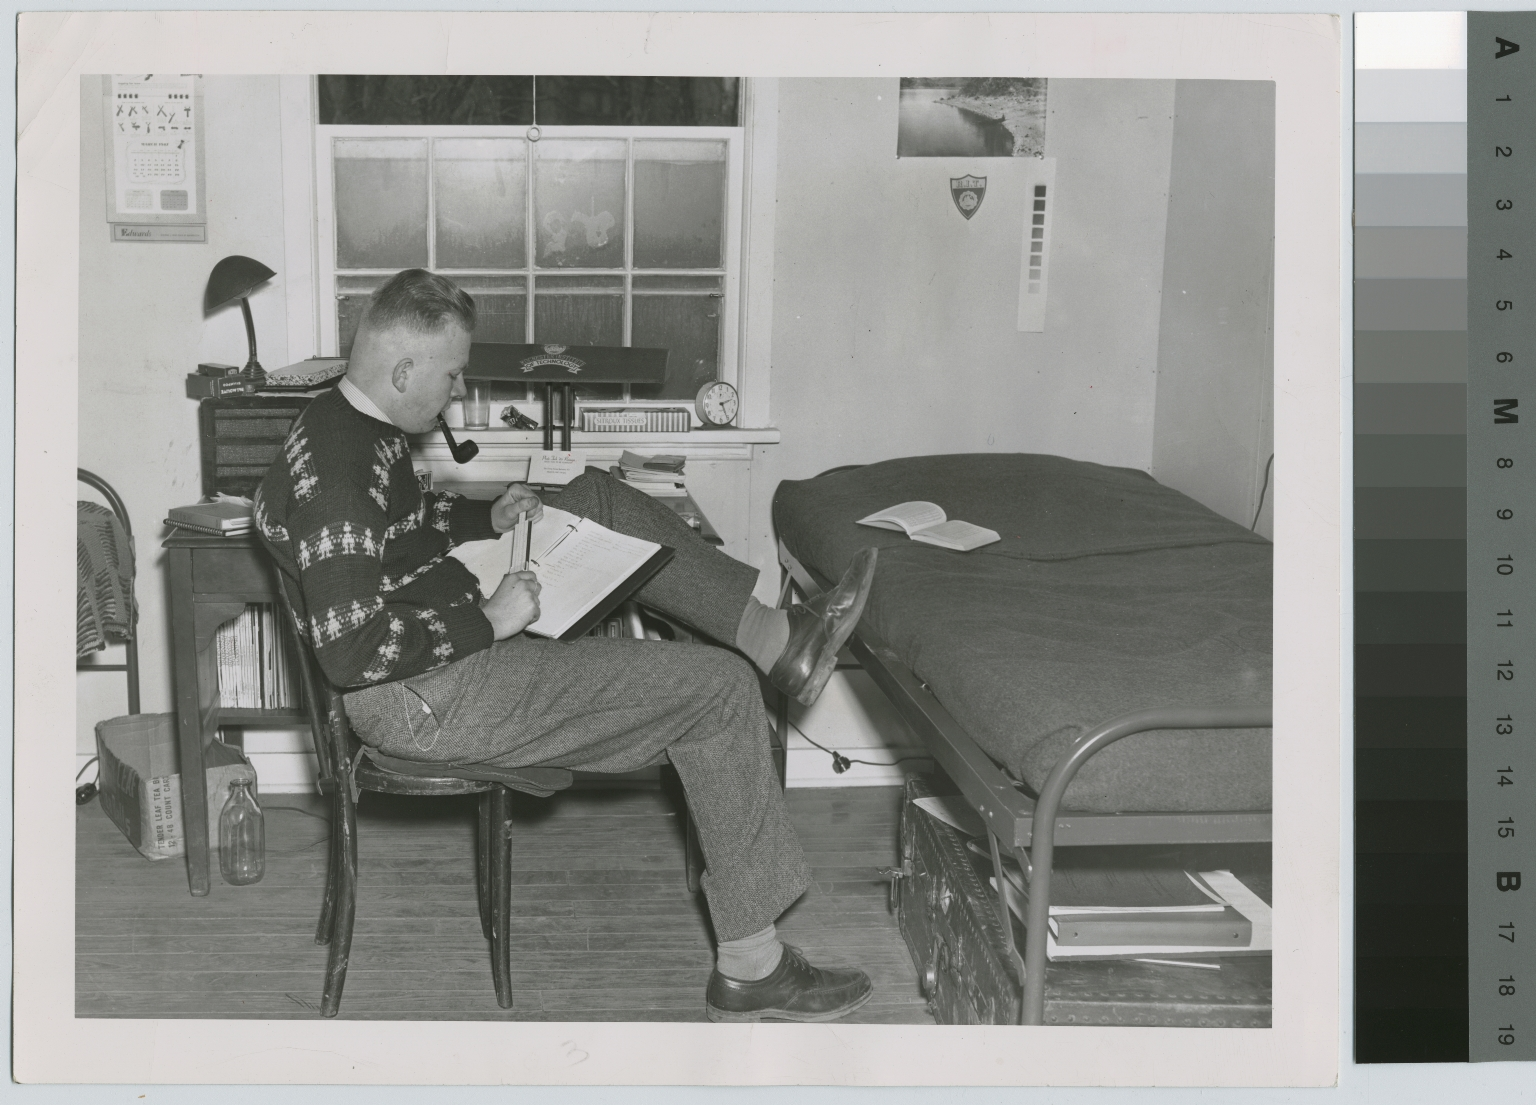 Donald Hults in Barracks Dormitory. Rochester Institute of Technology